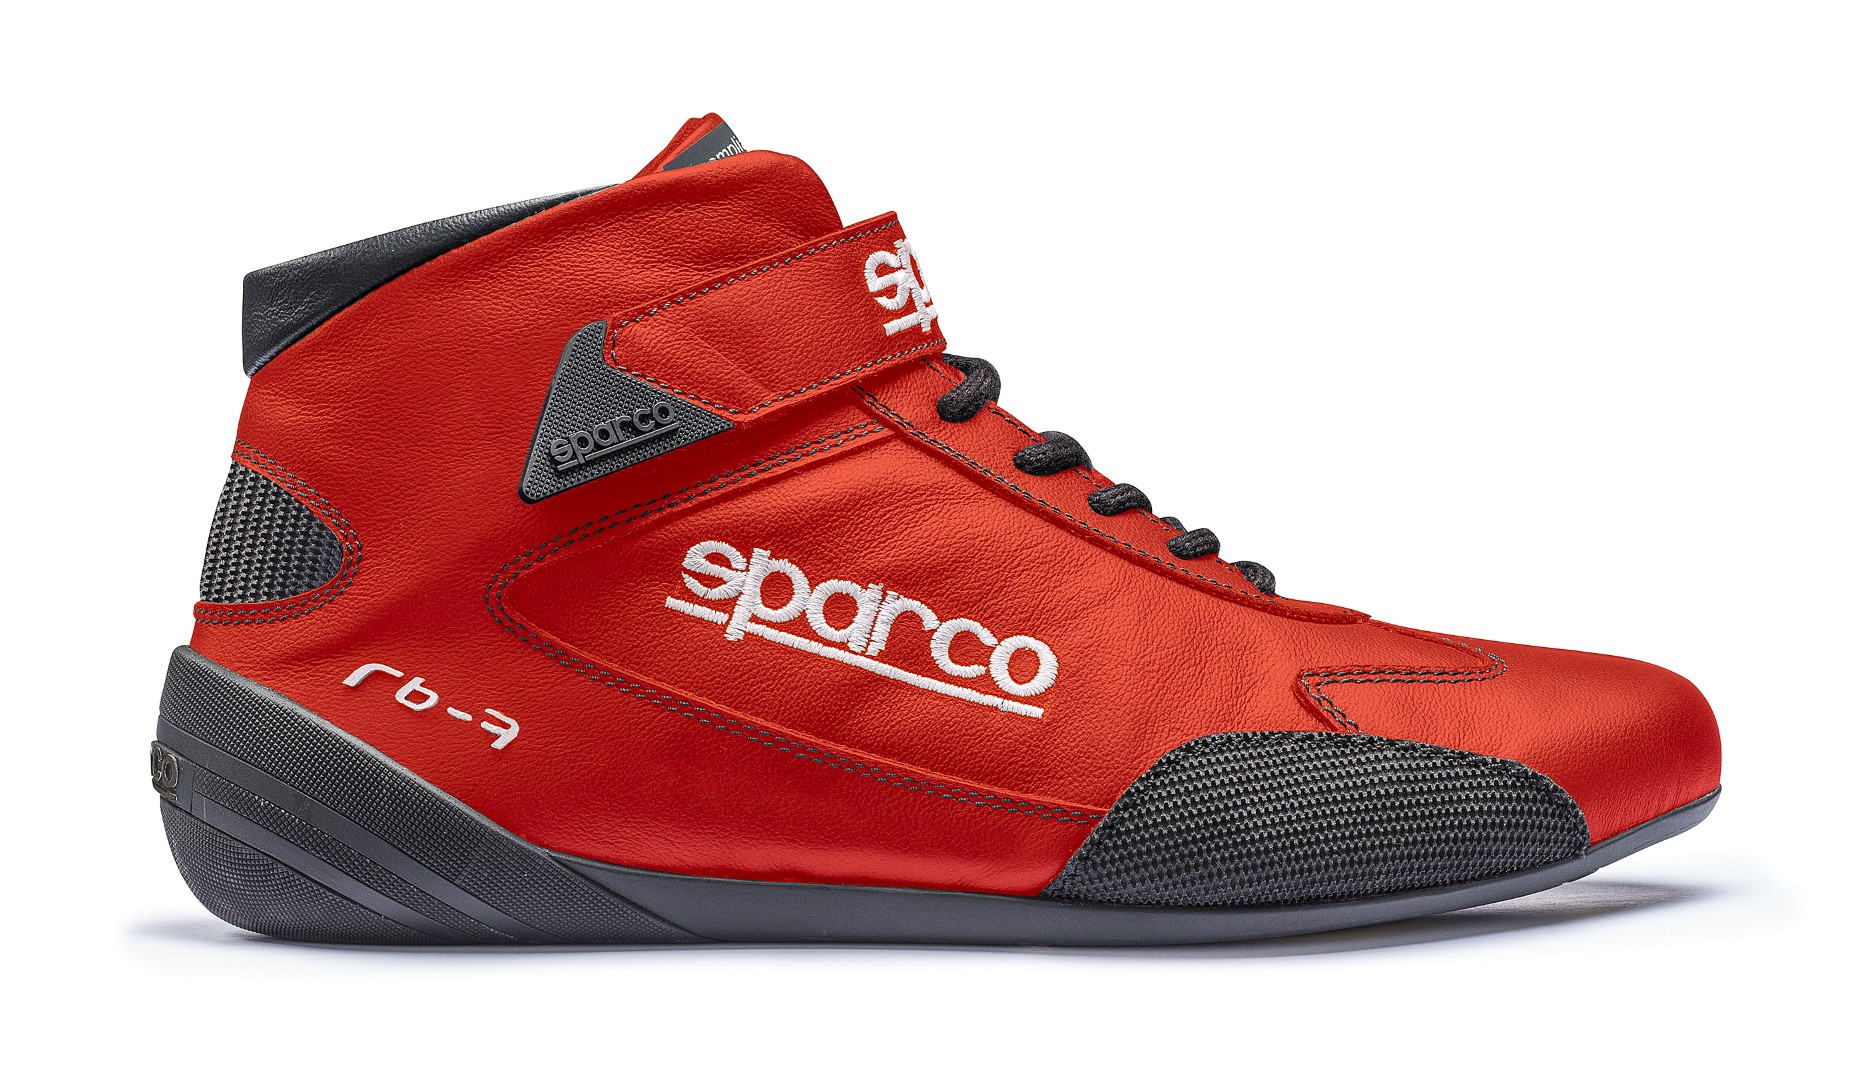 Sparco Red Cross RB-7 Driving Shoes EU 46 | US 12.5 - 00122446RS